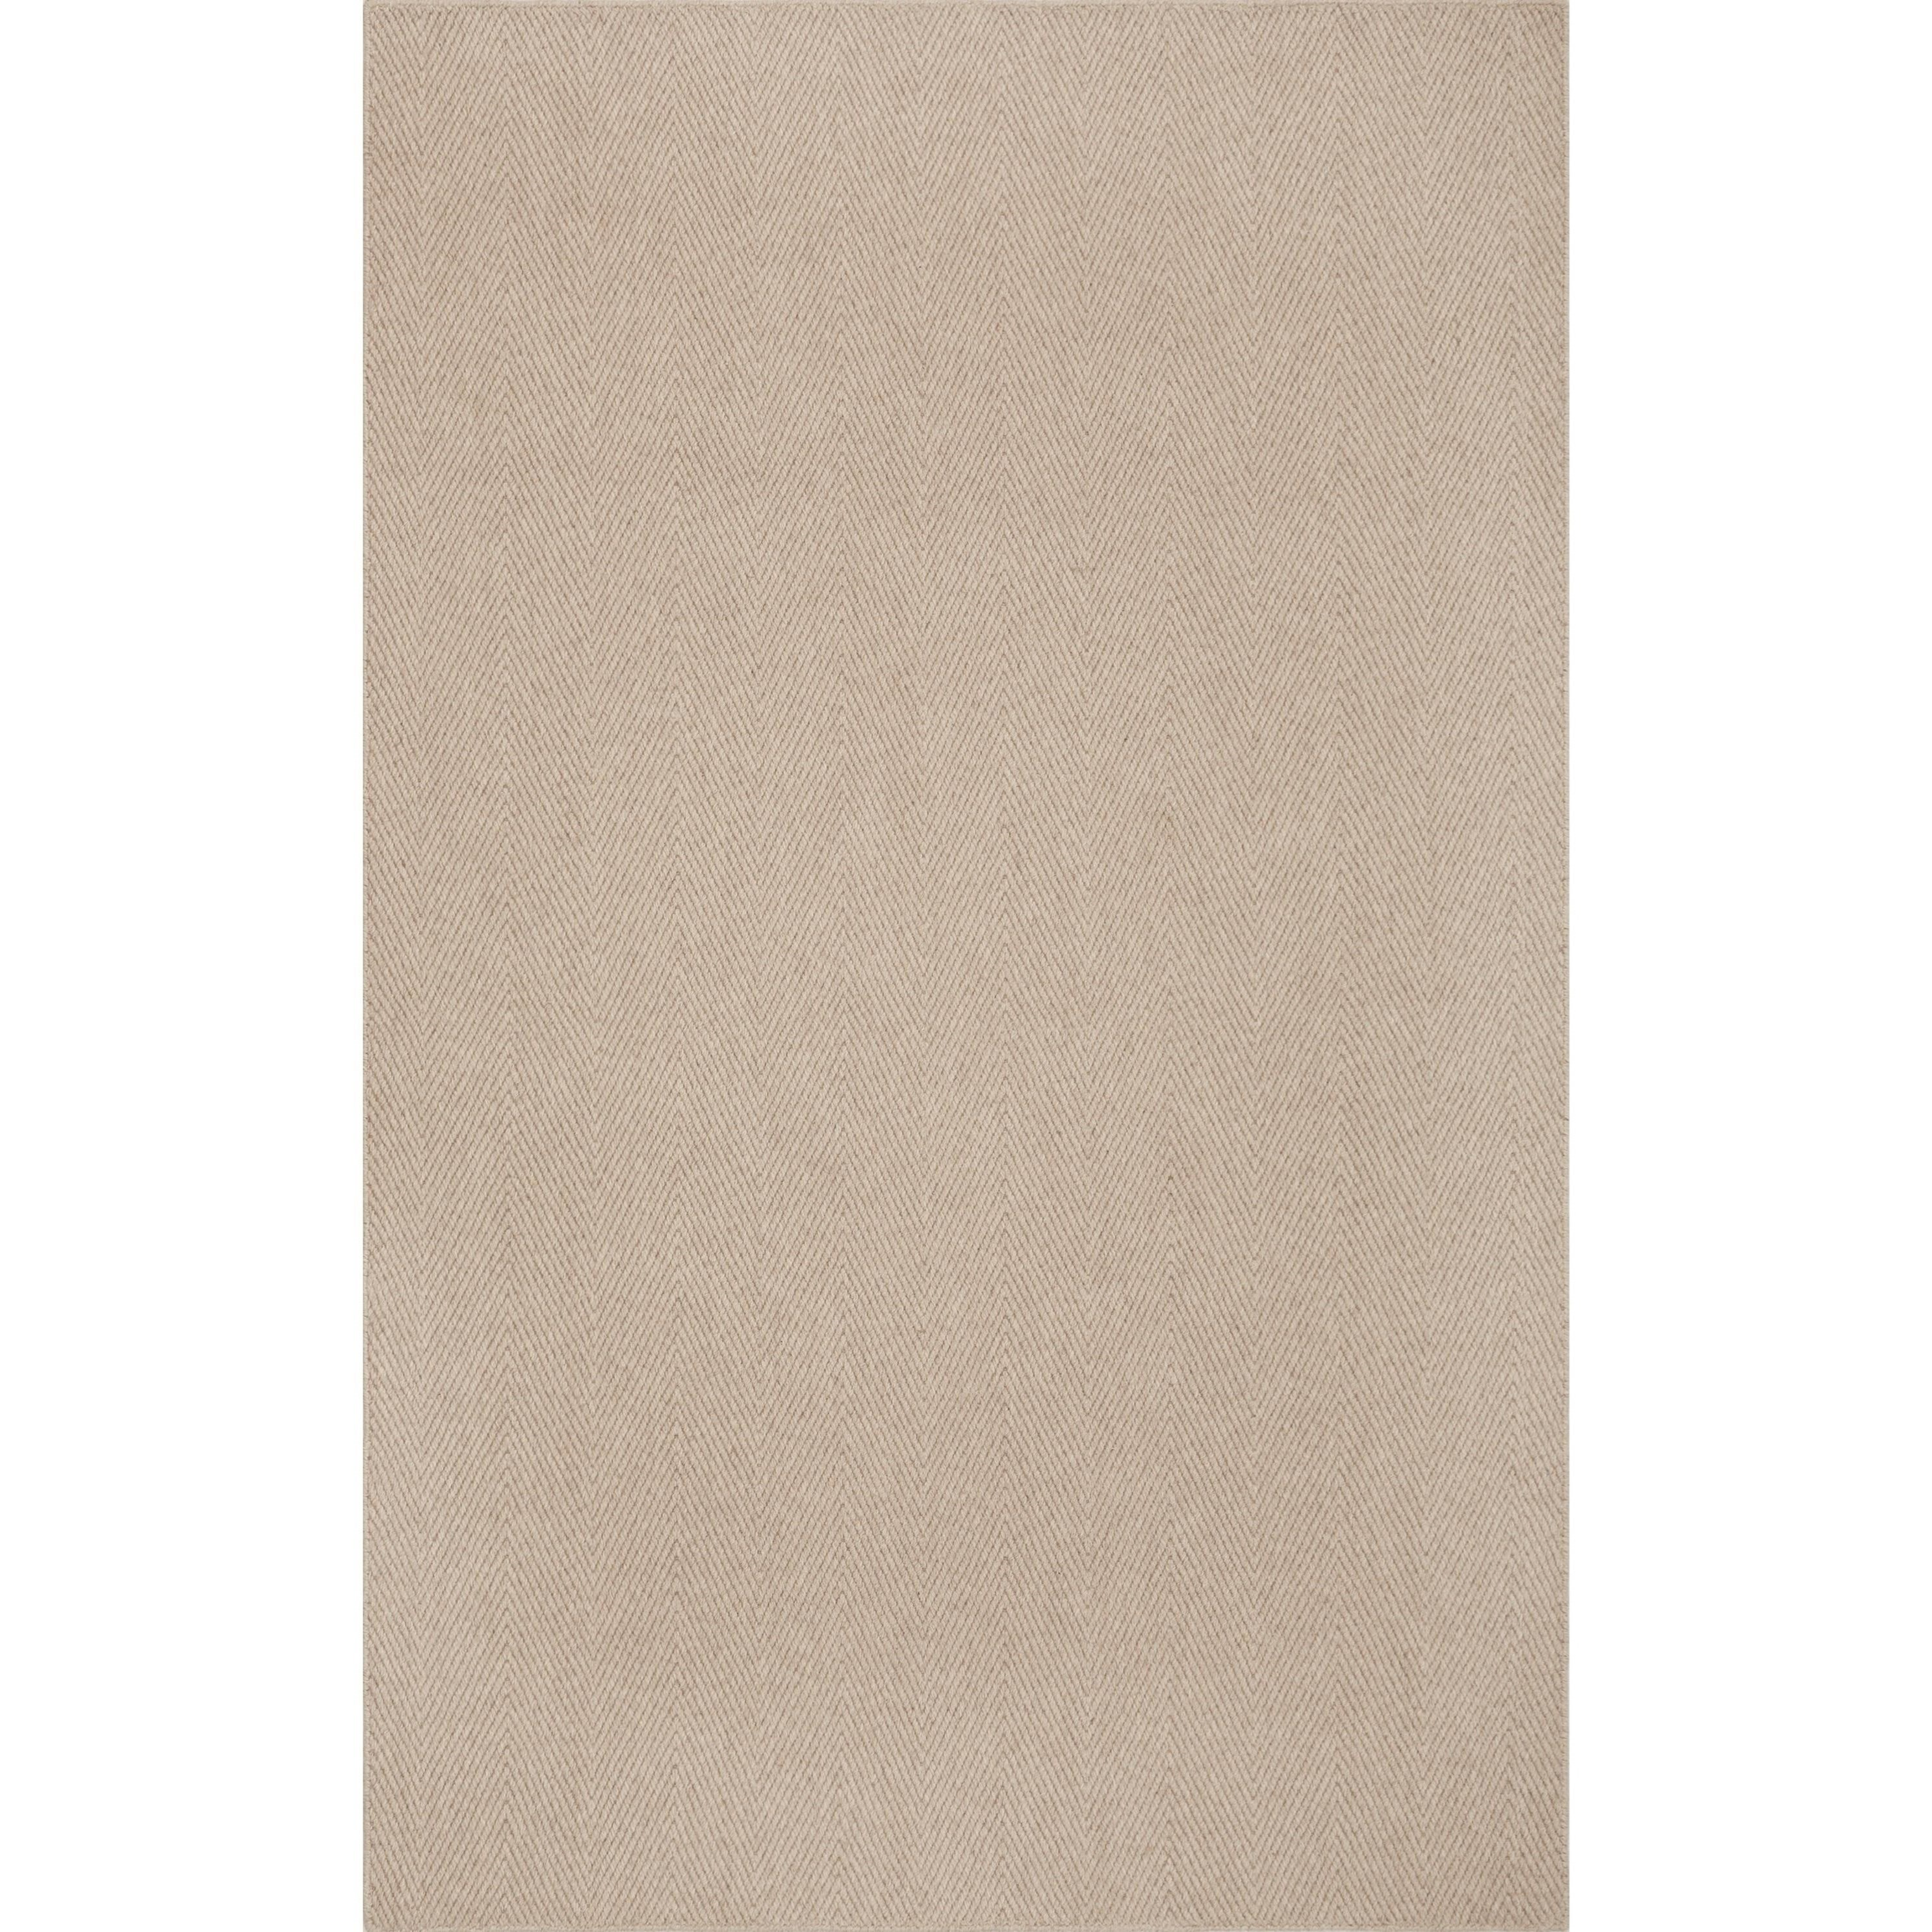 "Monaco Sisal Linen 2'3""X8' Rug by Dalyn at Hudson's Furniture"